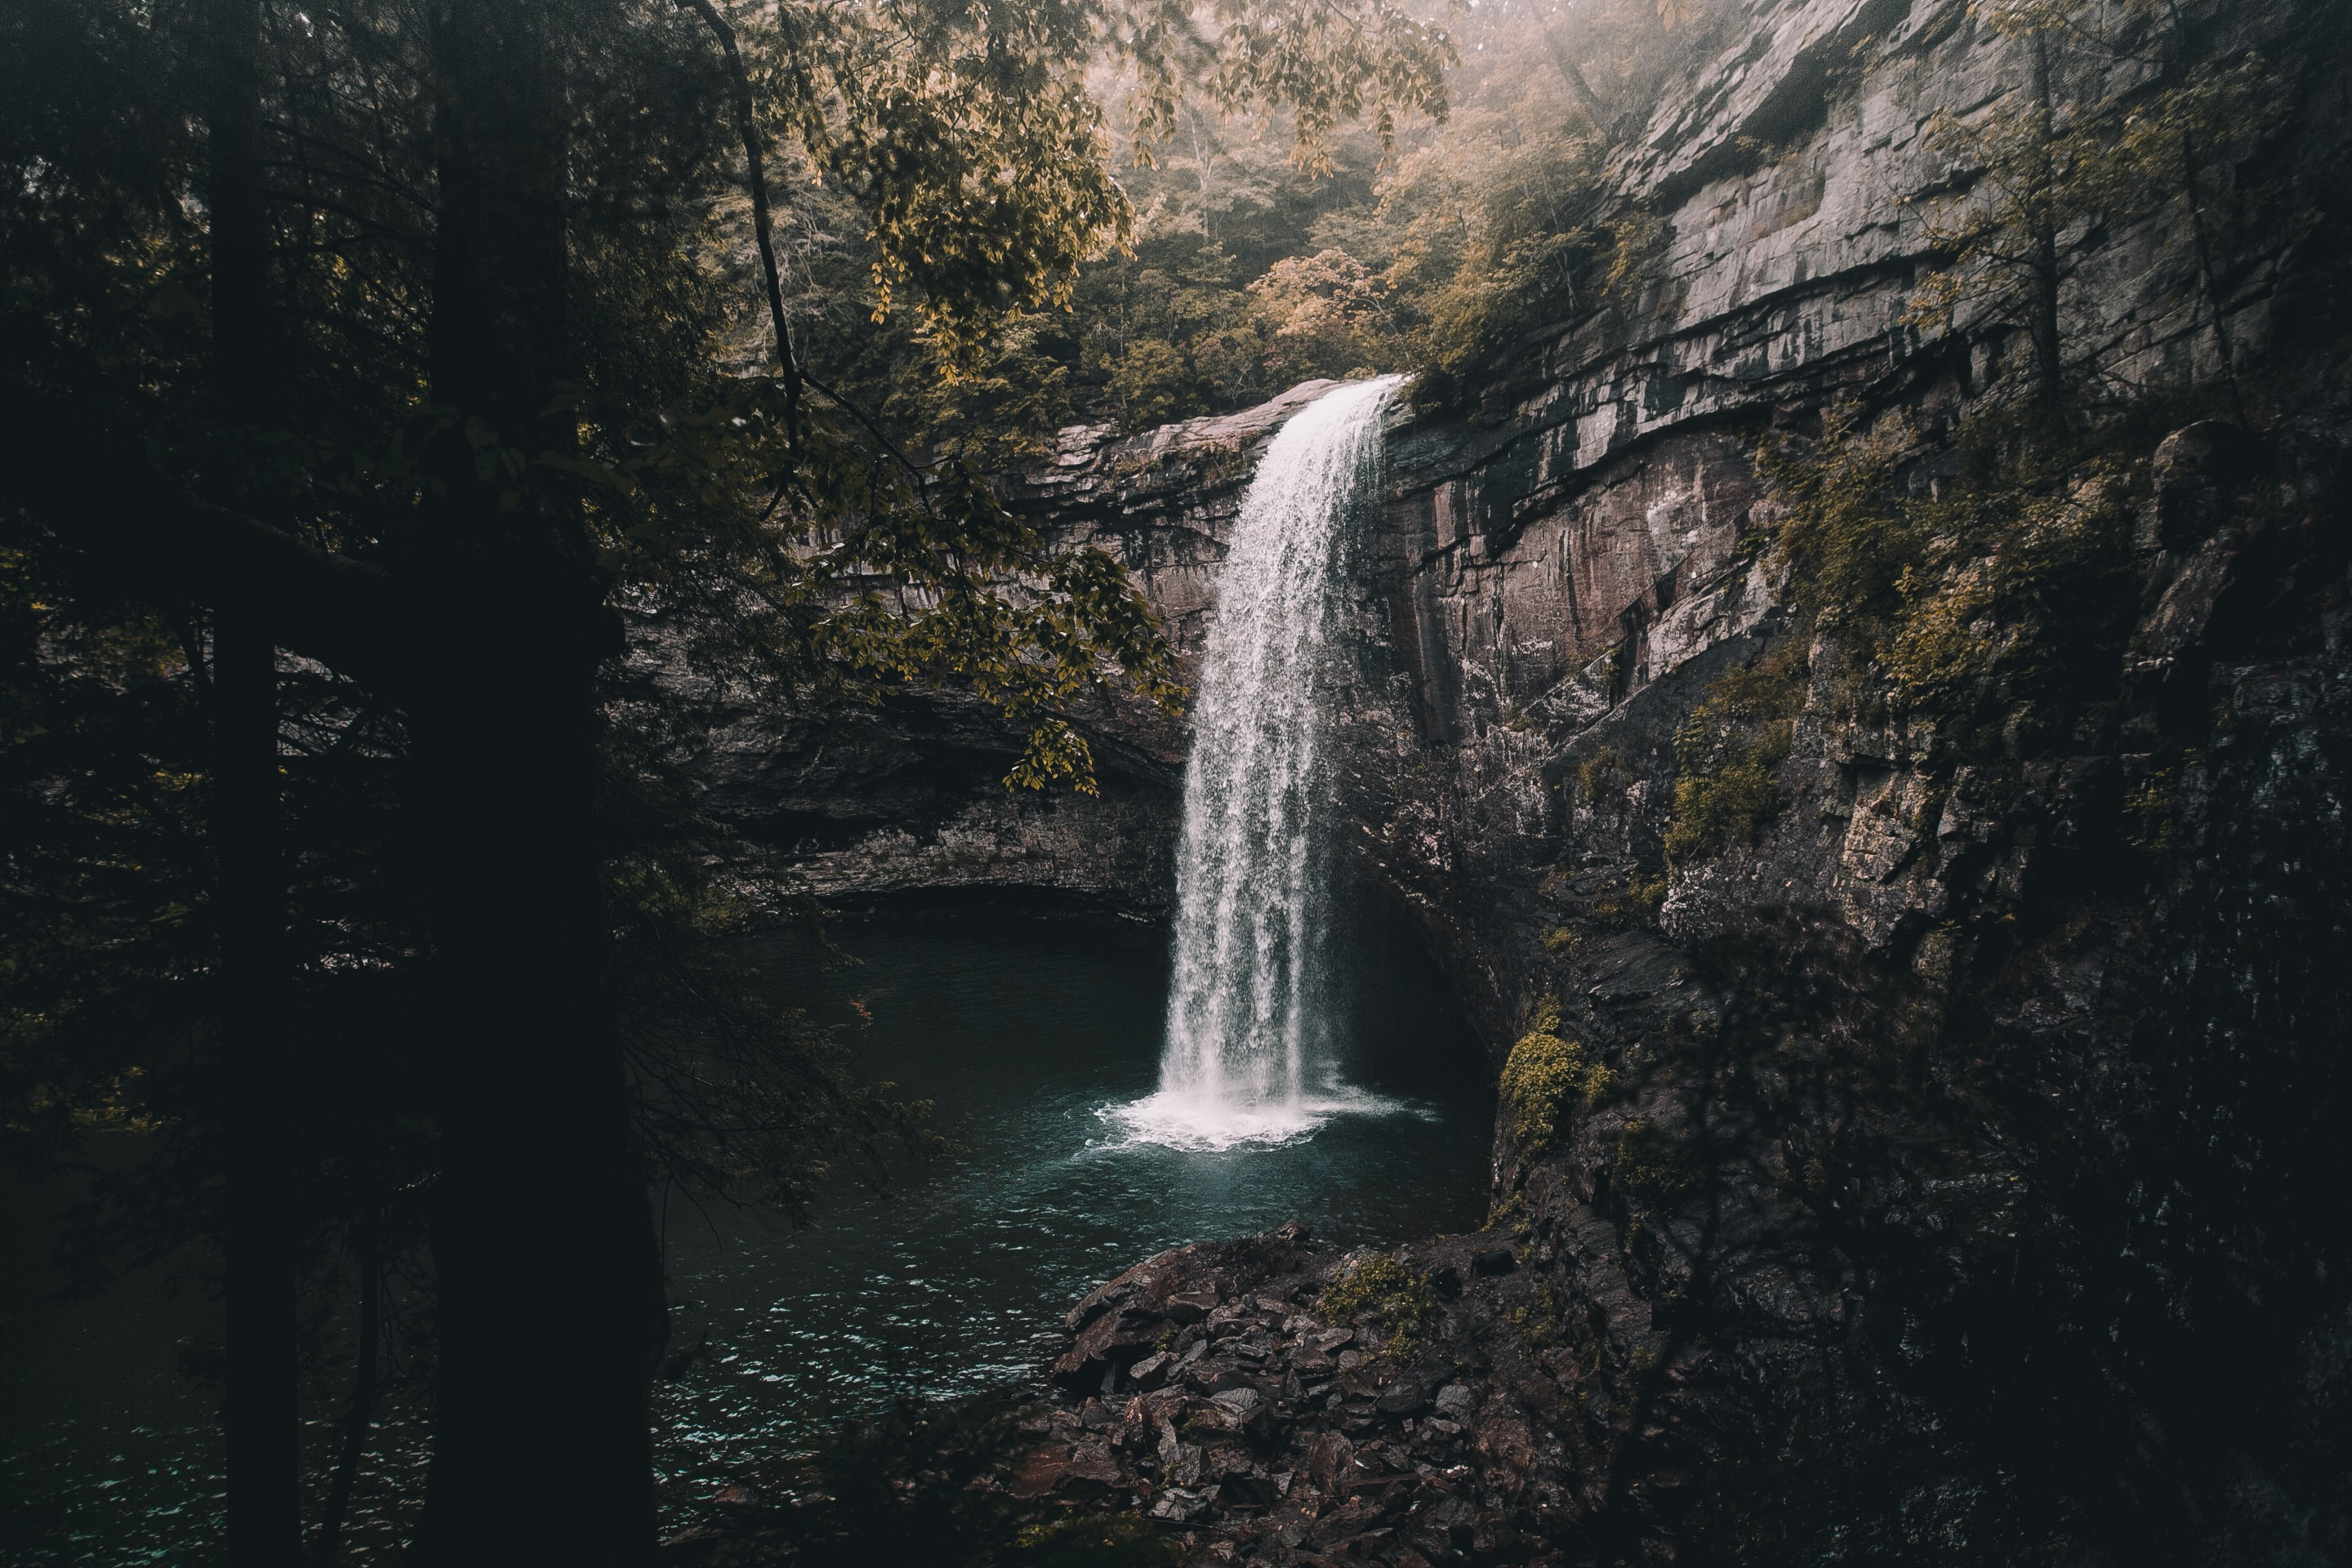 waterfalls between trees and grass